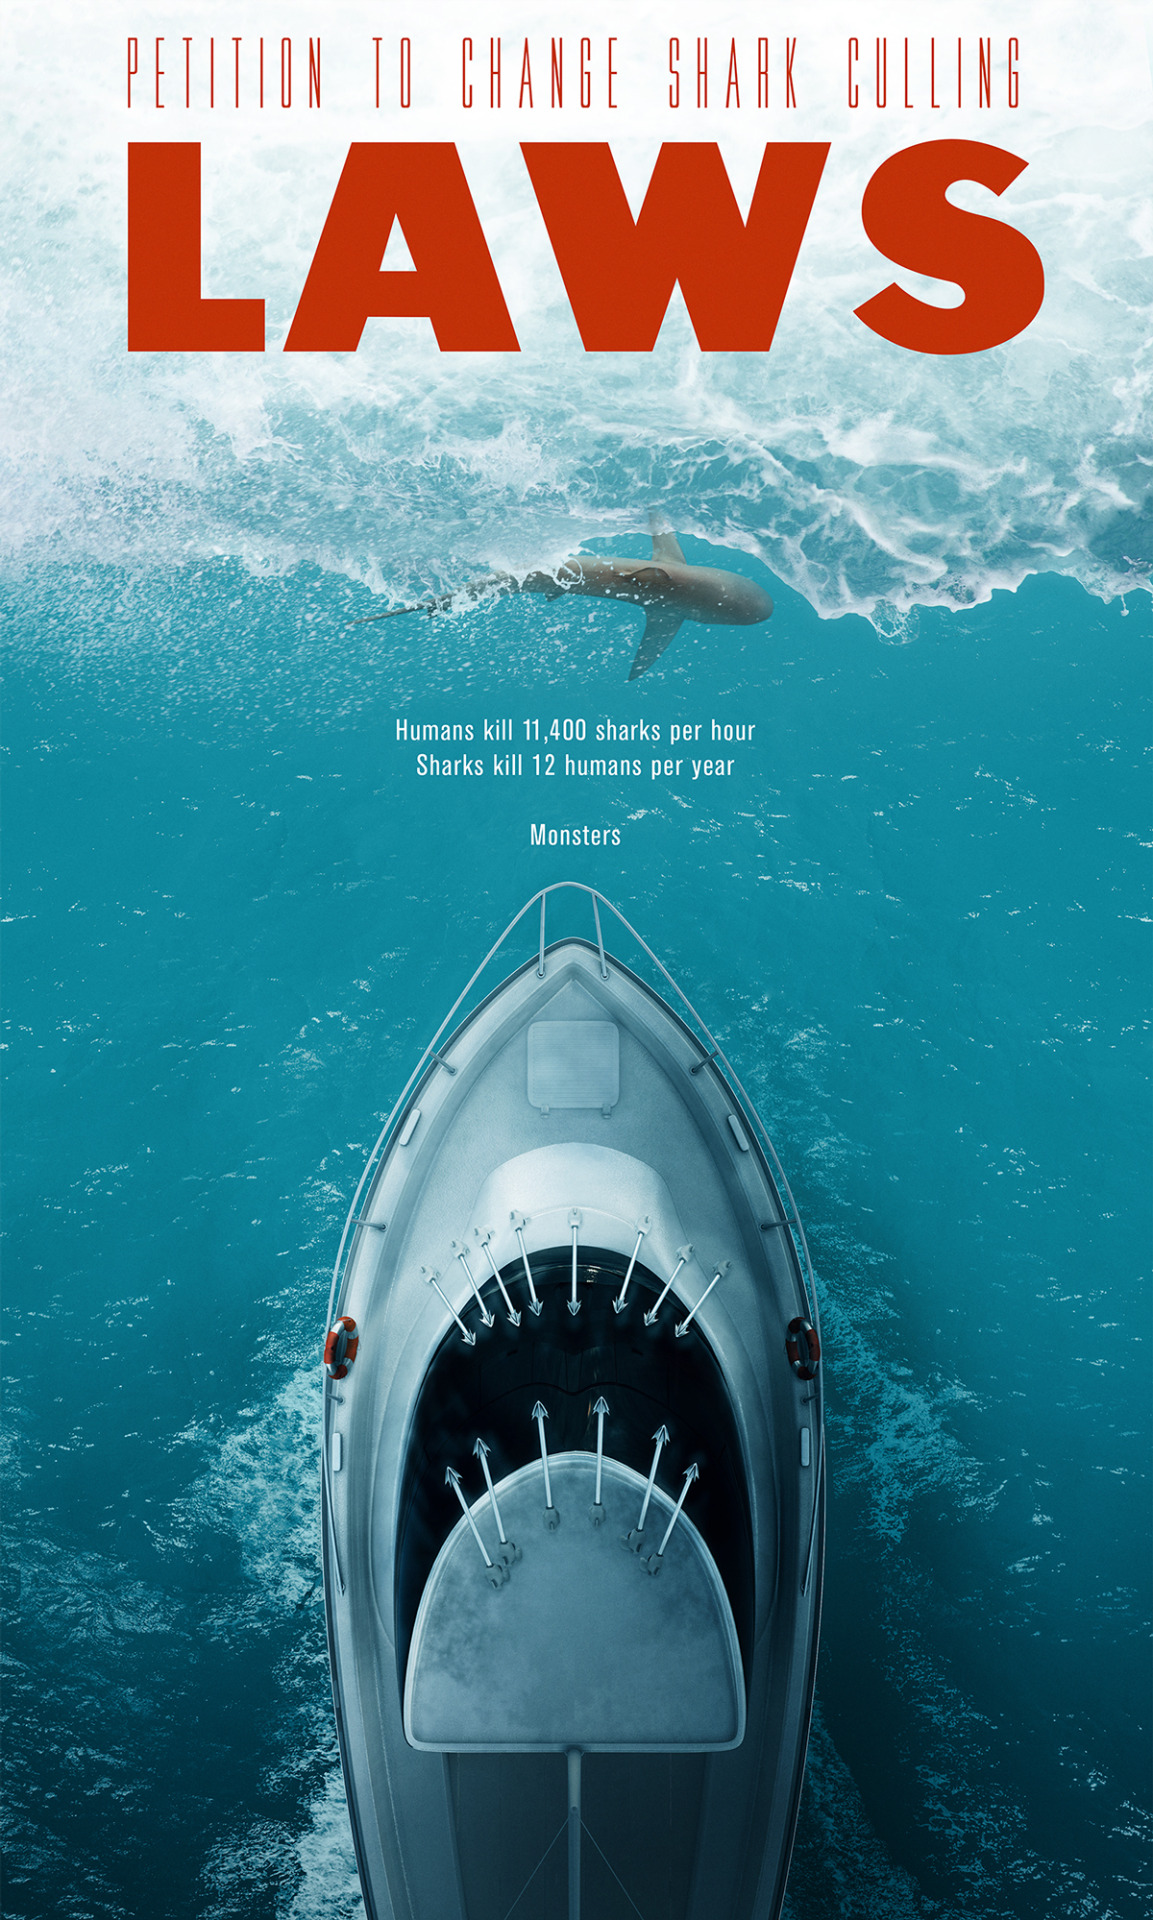 """Shark Culling """"Laws"""" Poster"""